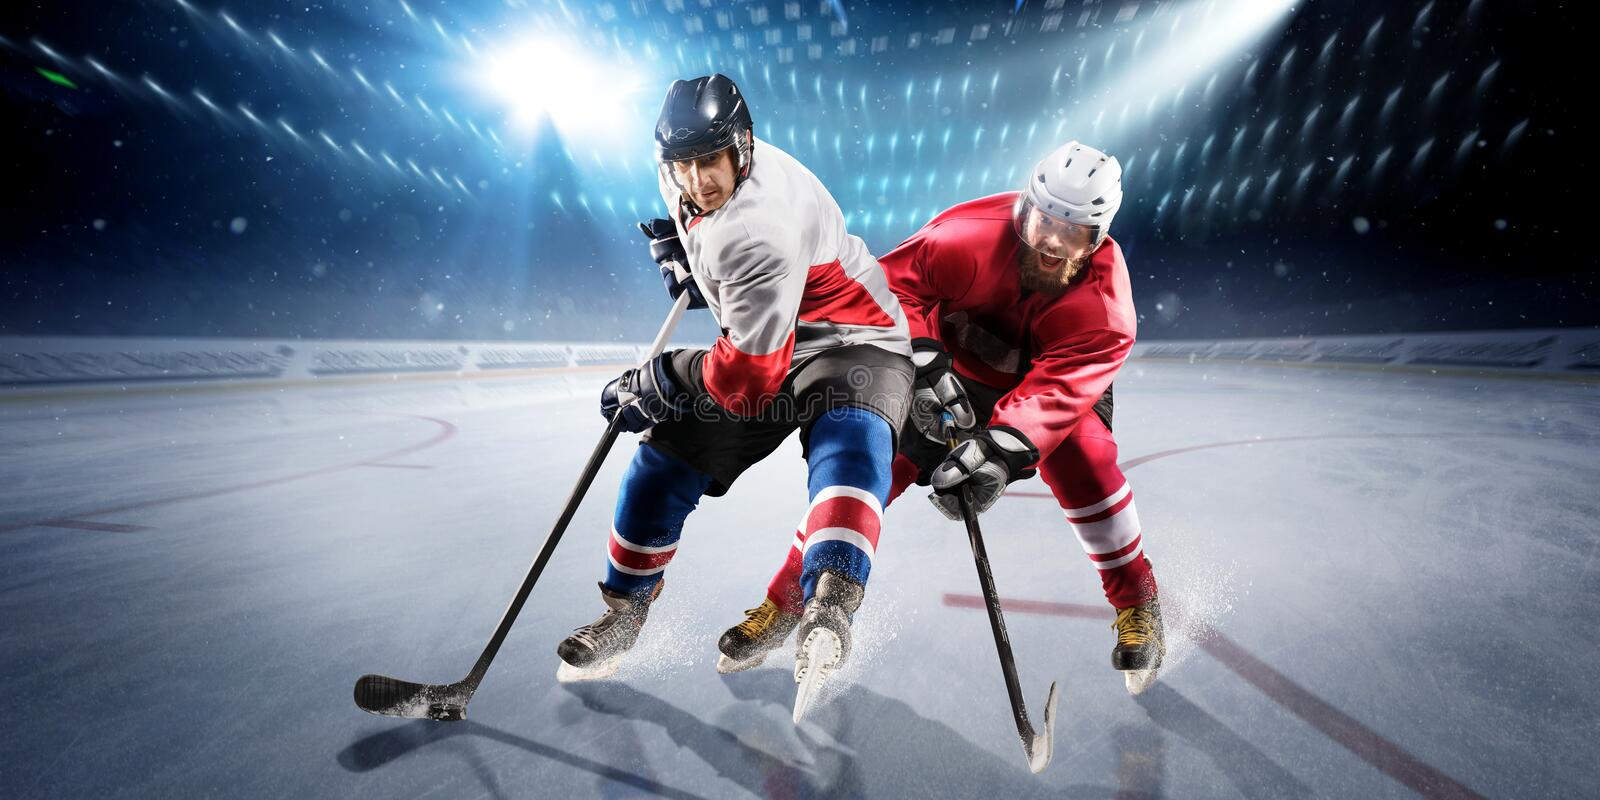 Hockey players shoots the puck and attacks. Hockey player shoots the puck and attacks stock photo